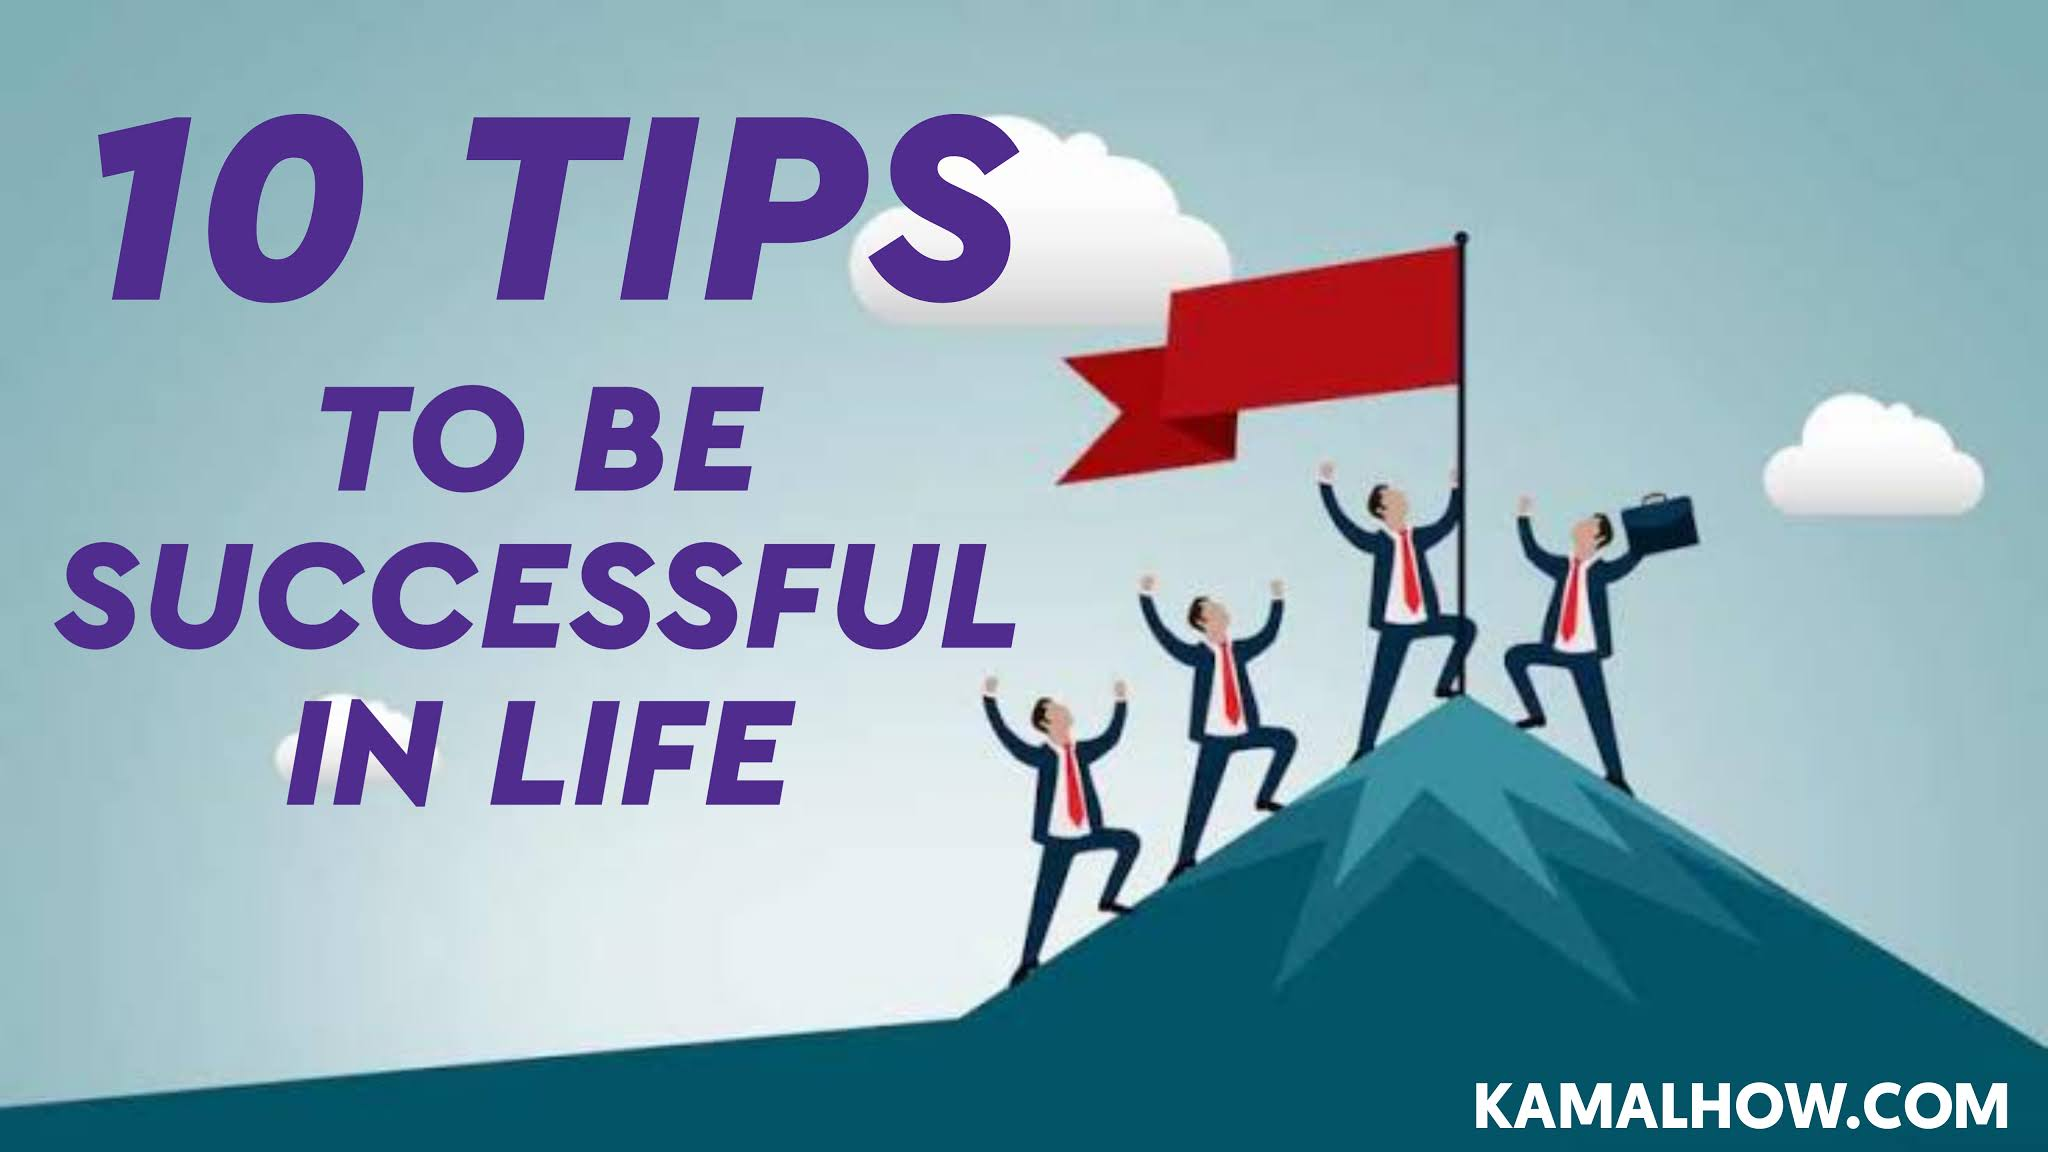 10 Steps for successful life - 10 rules for successful life